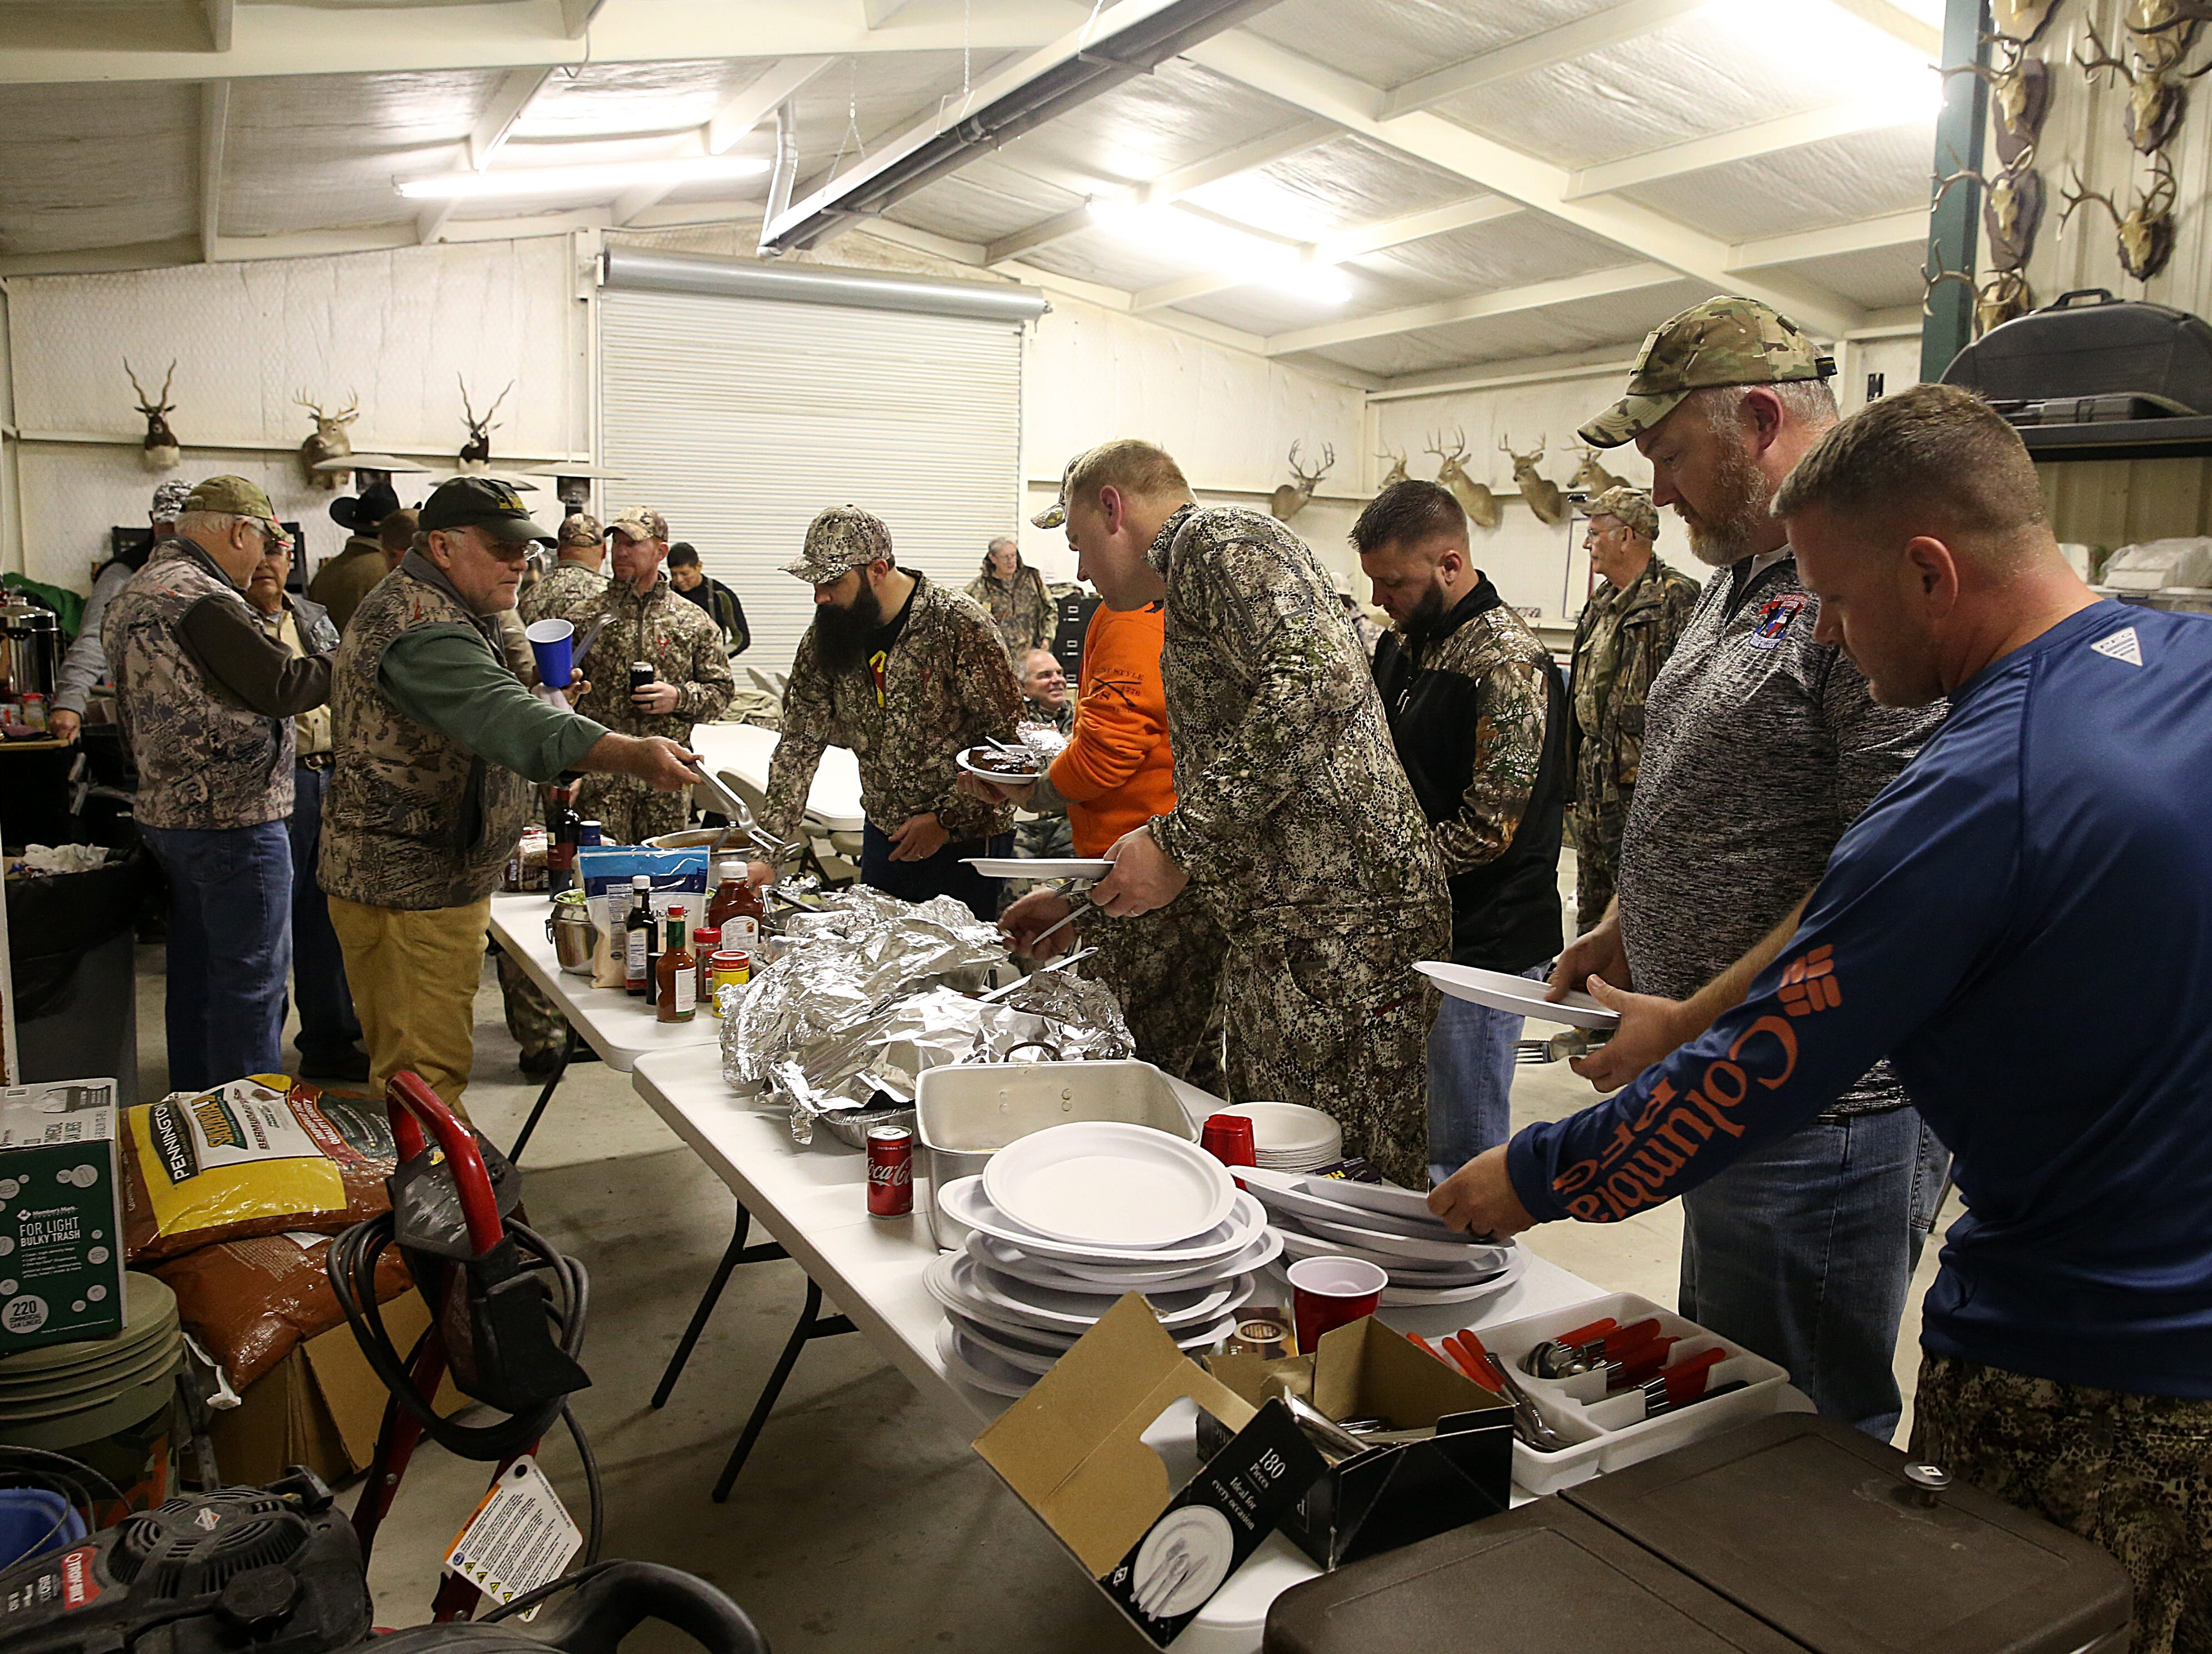 Hunters line up for dinner during the annual deer hunt in Christoval Friday, Dec. 7, 2018 sponsored by San Angelo Support for Veterans and Lone Star Warriors Outdoors.